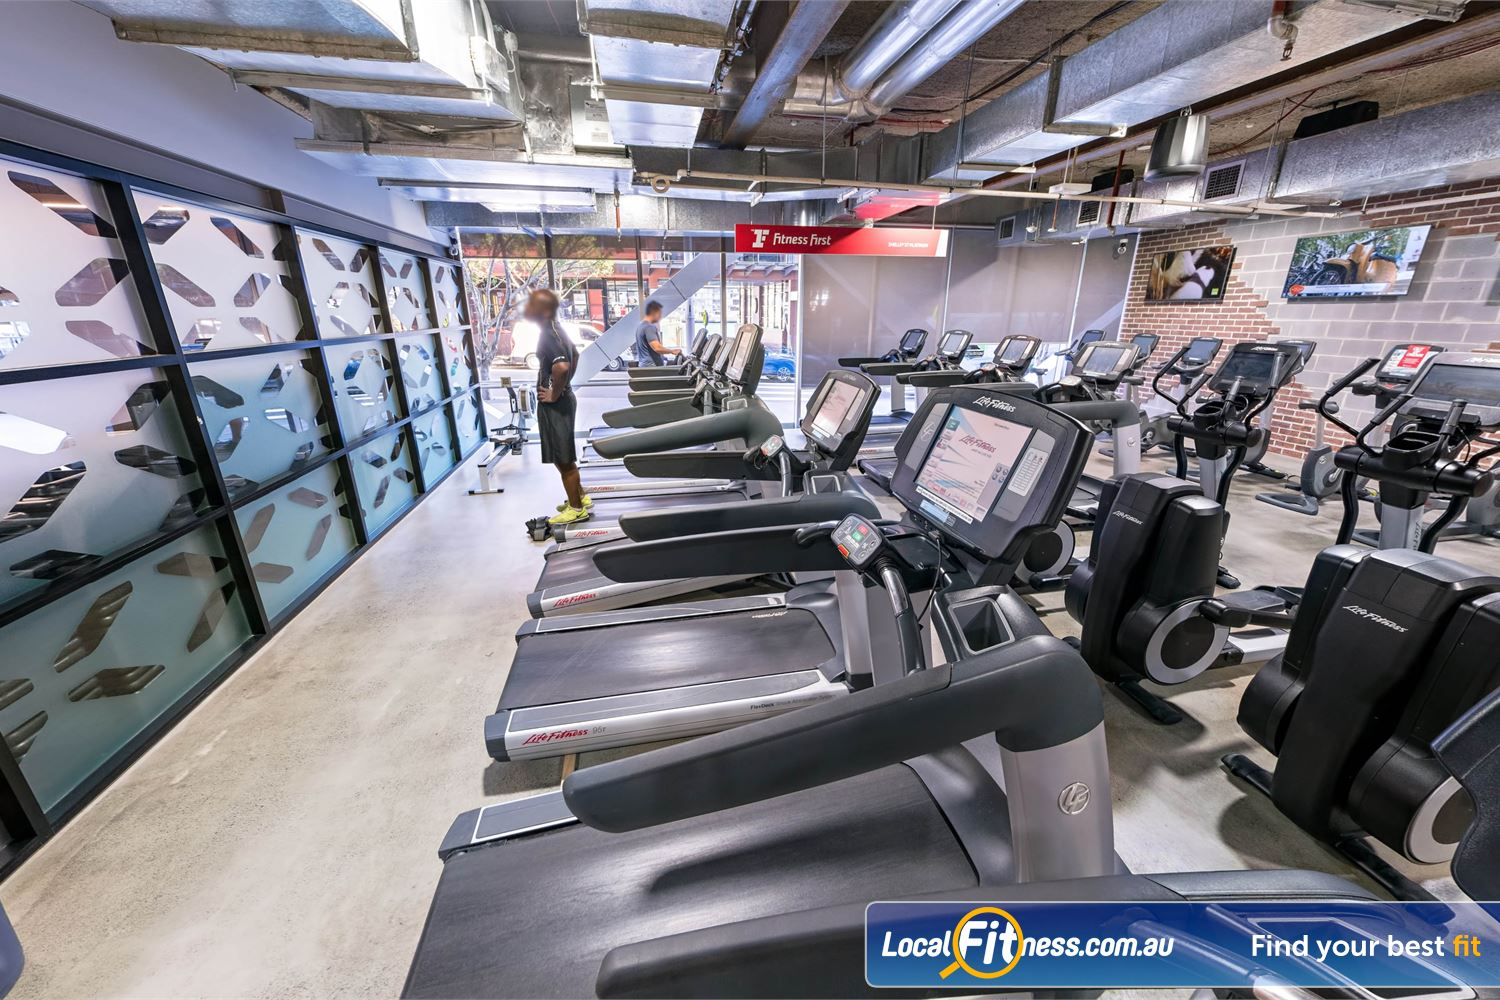 Fitness First Platinum Shelley St Sydney Rows and rows of state of the art Life Fitness cardio.